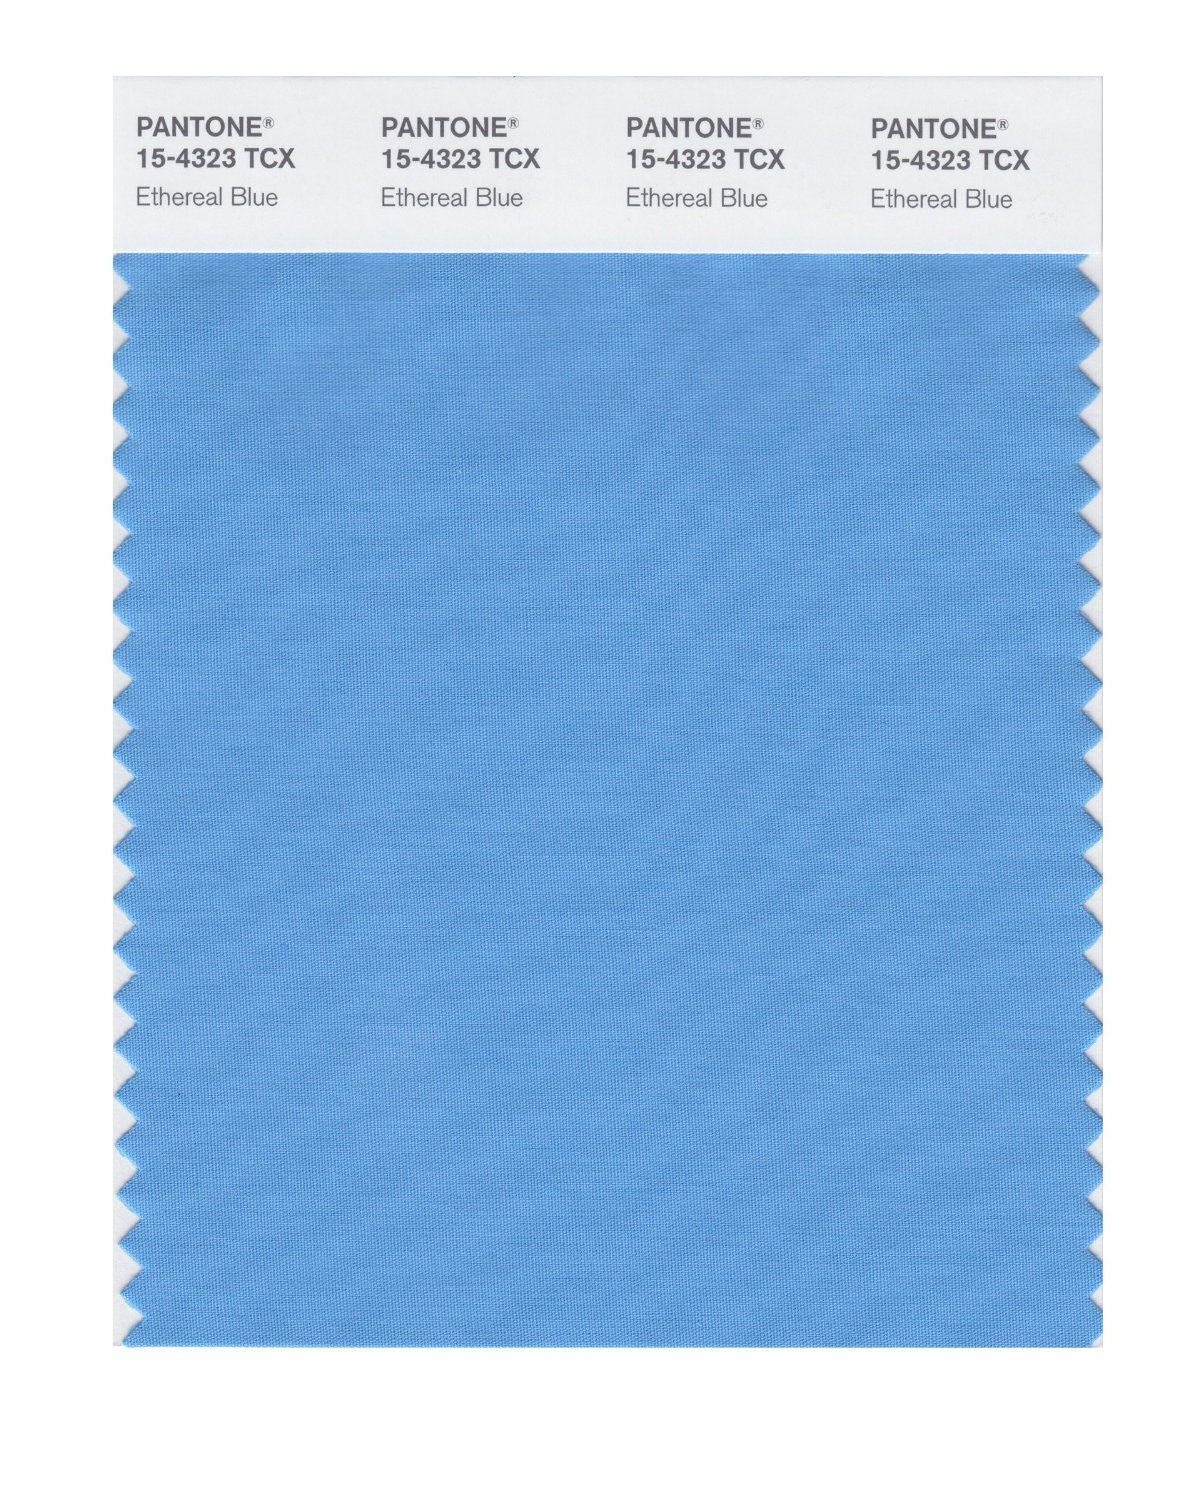 Pantone Smart Swatch 15-4323 Ethereal Blue